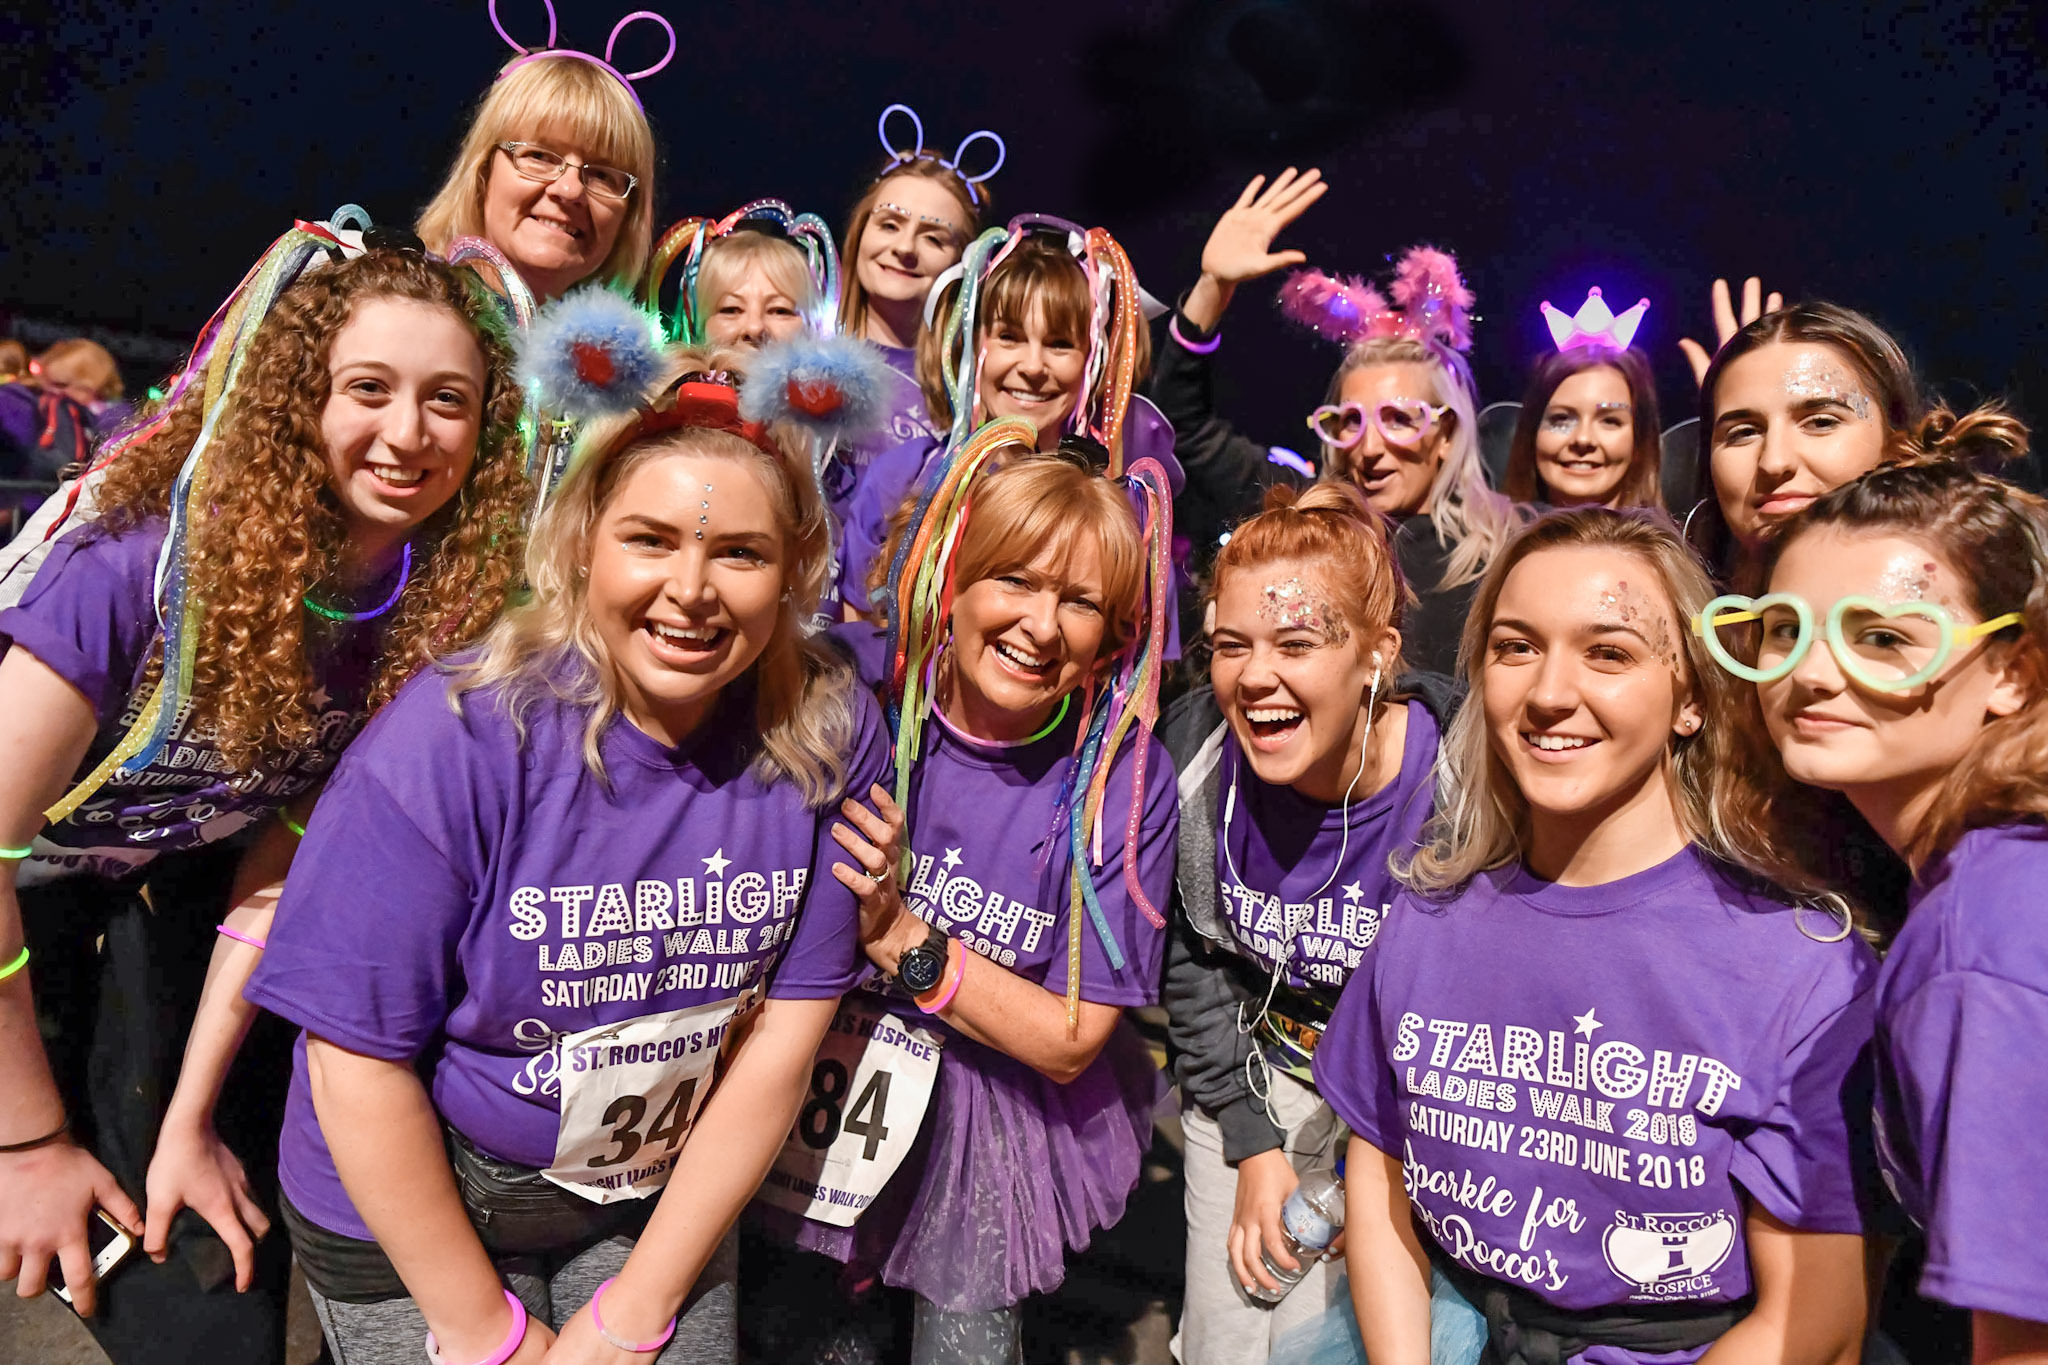 For the first time ladies will be walking past St Rocco's Hospice